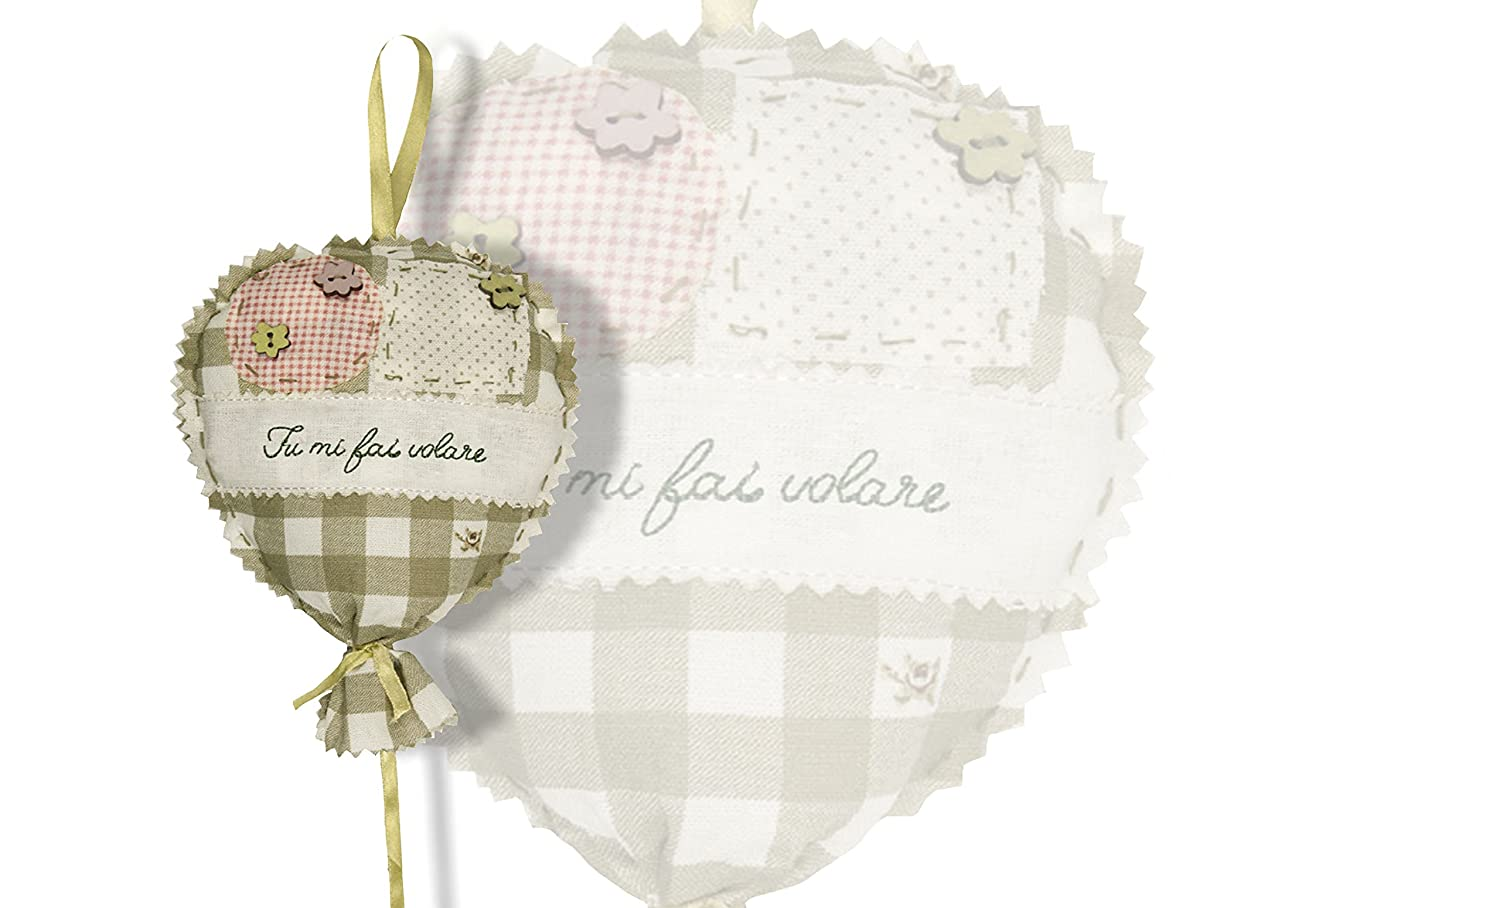 Angelica Home & Country Regalo Almohada, Almohada Decorativa ...